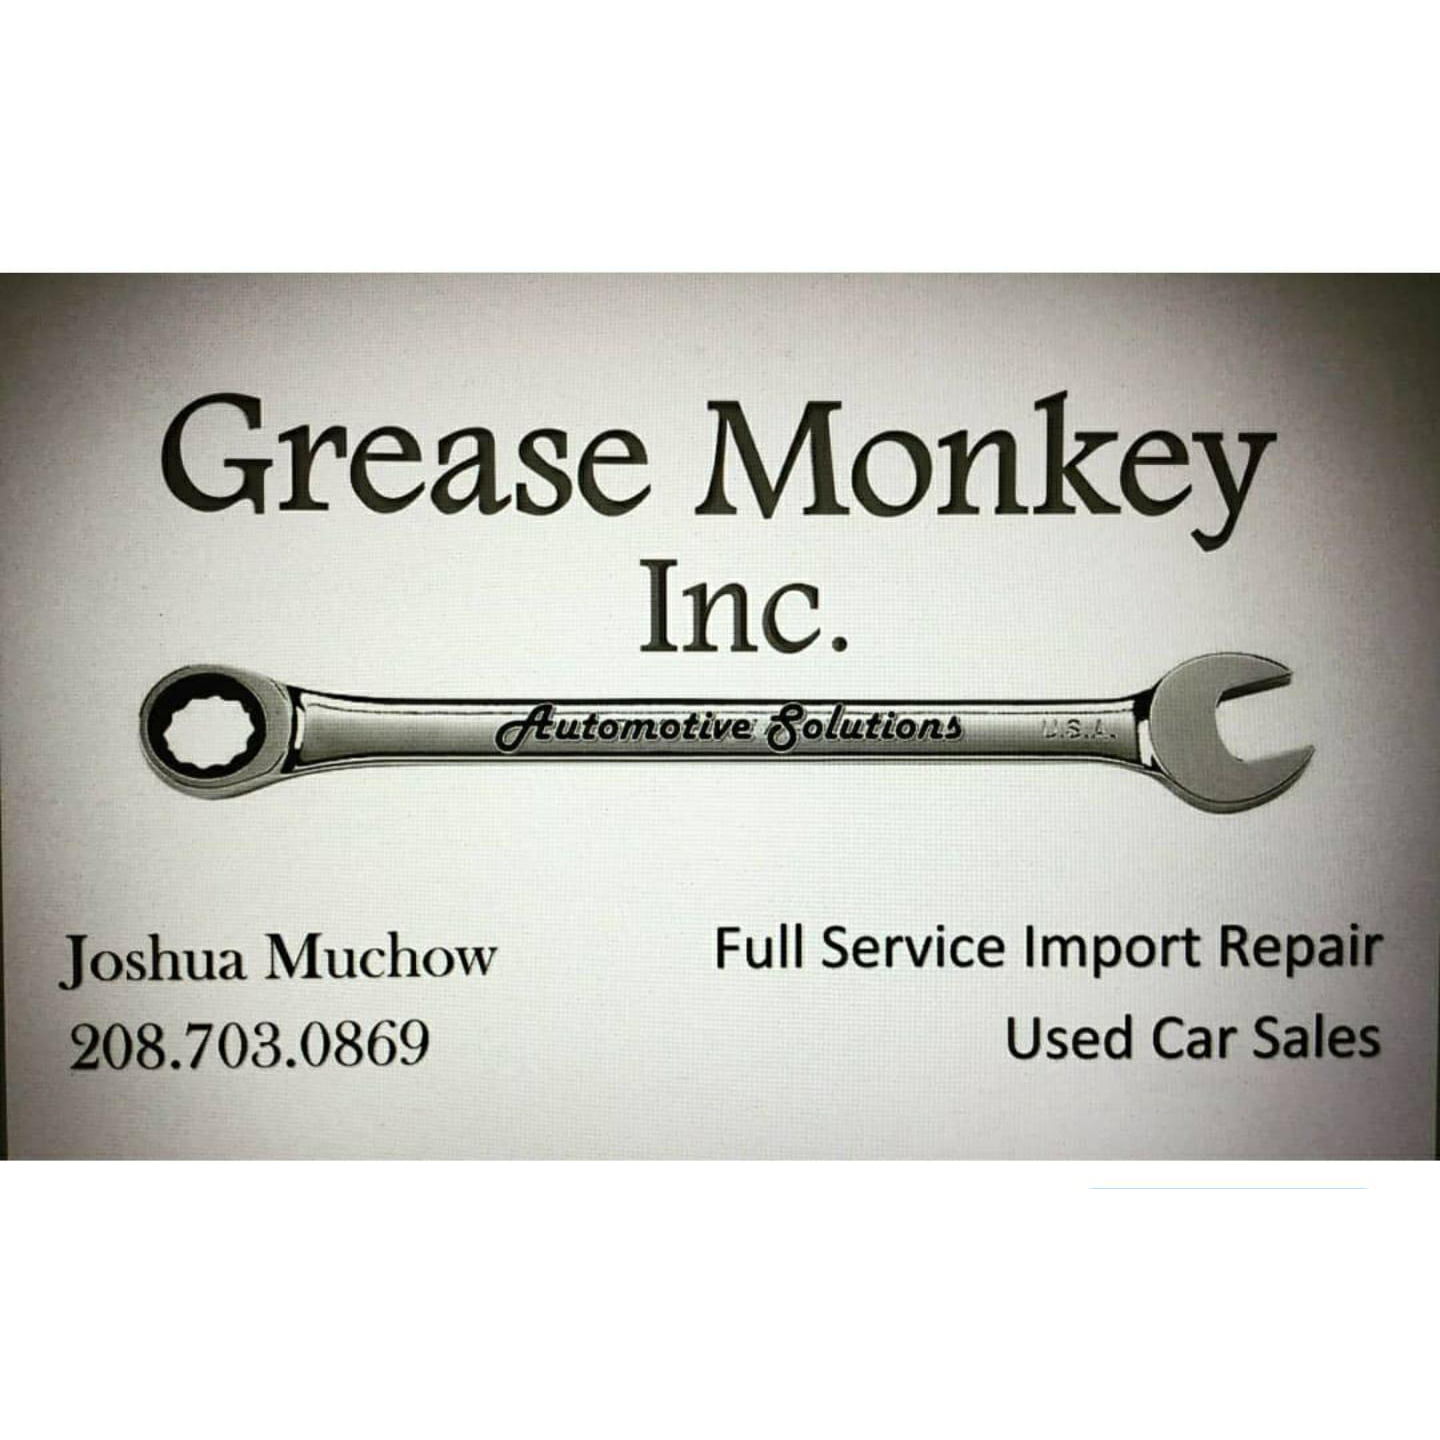 Grease Monkey Automotive Solutions